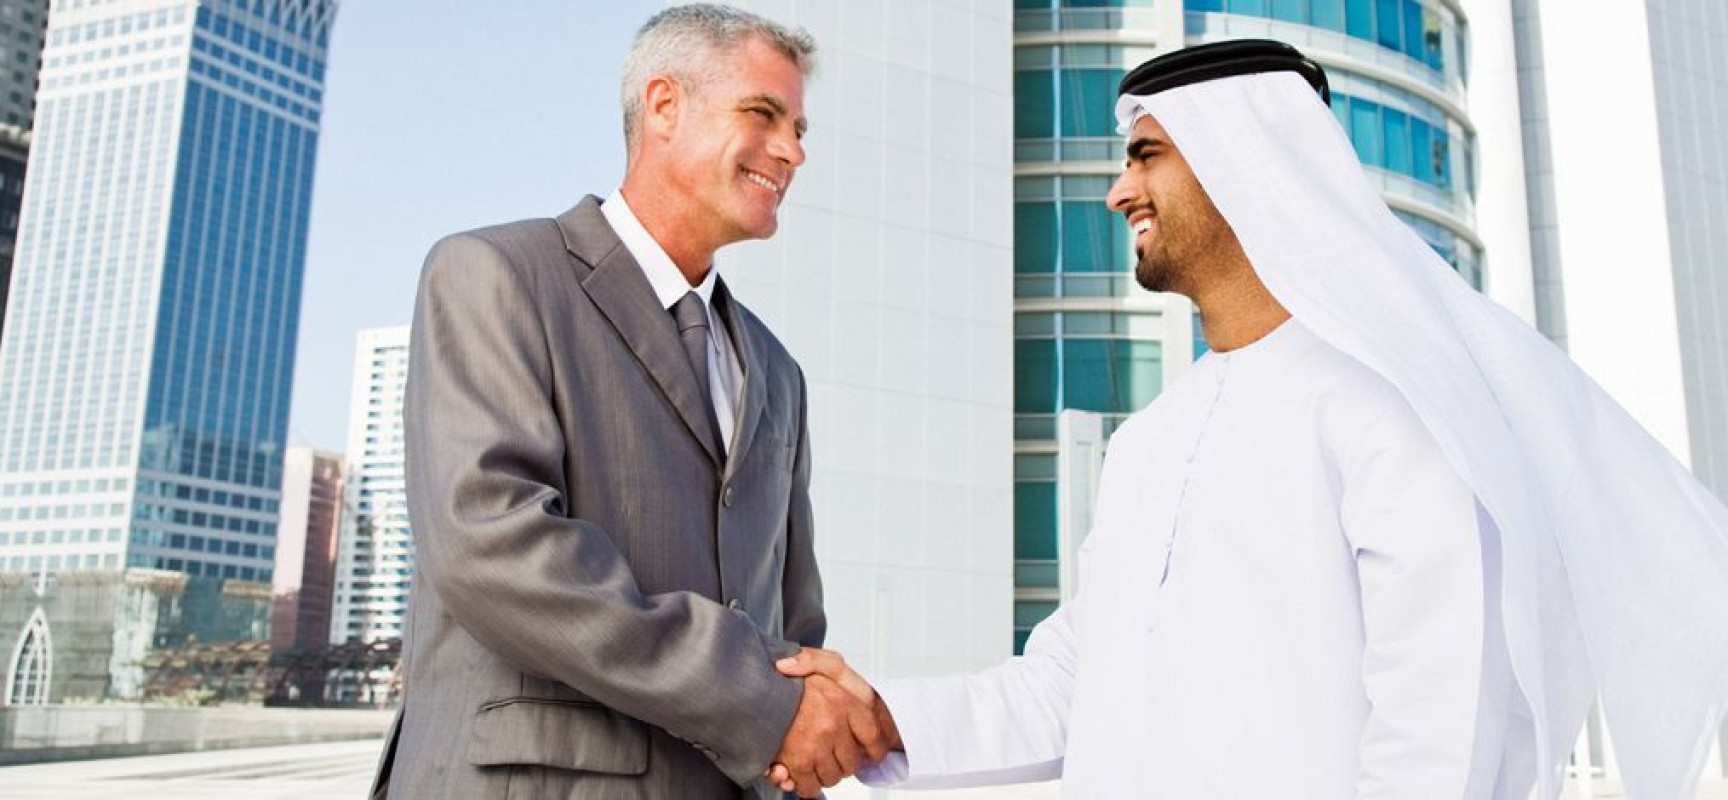 The UAE: Good For Business?